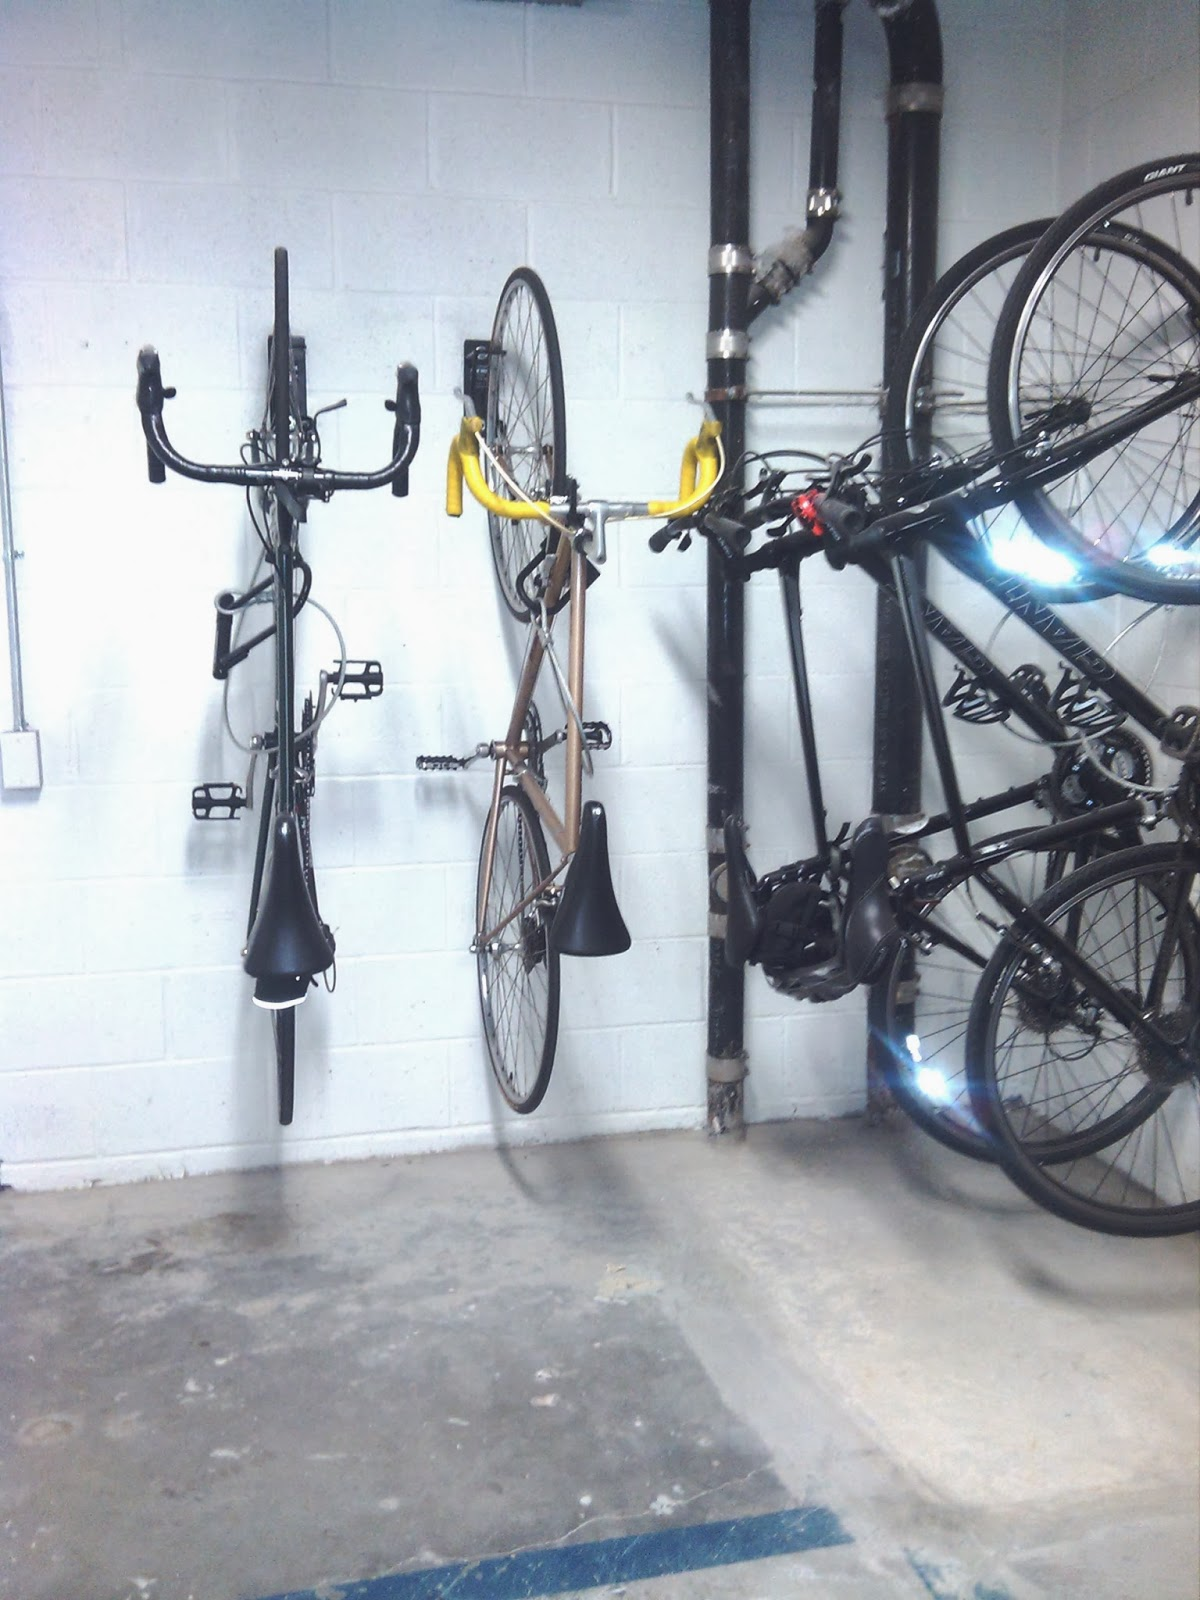 Wall Mount Bike Brackets Installed In Woodside Provide Maximum Storage, In  The Smallest Footprint. Wall Mount Bike Brackets Allow Bikes To Be Stored  Just 12 ...